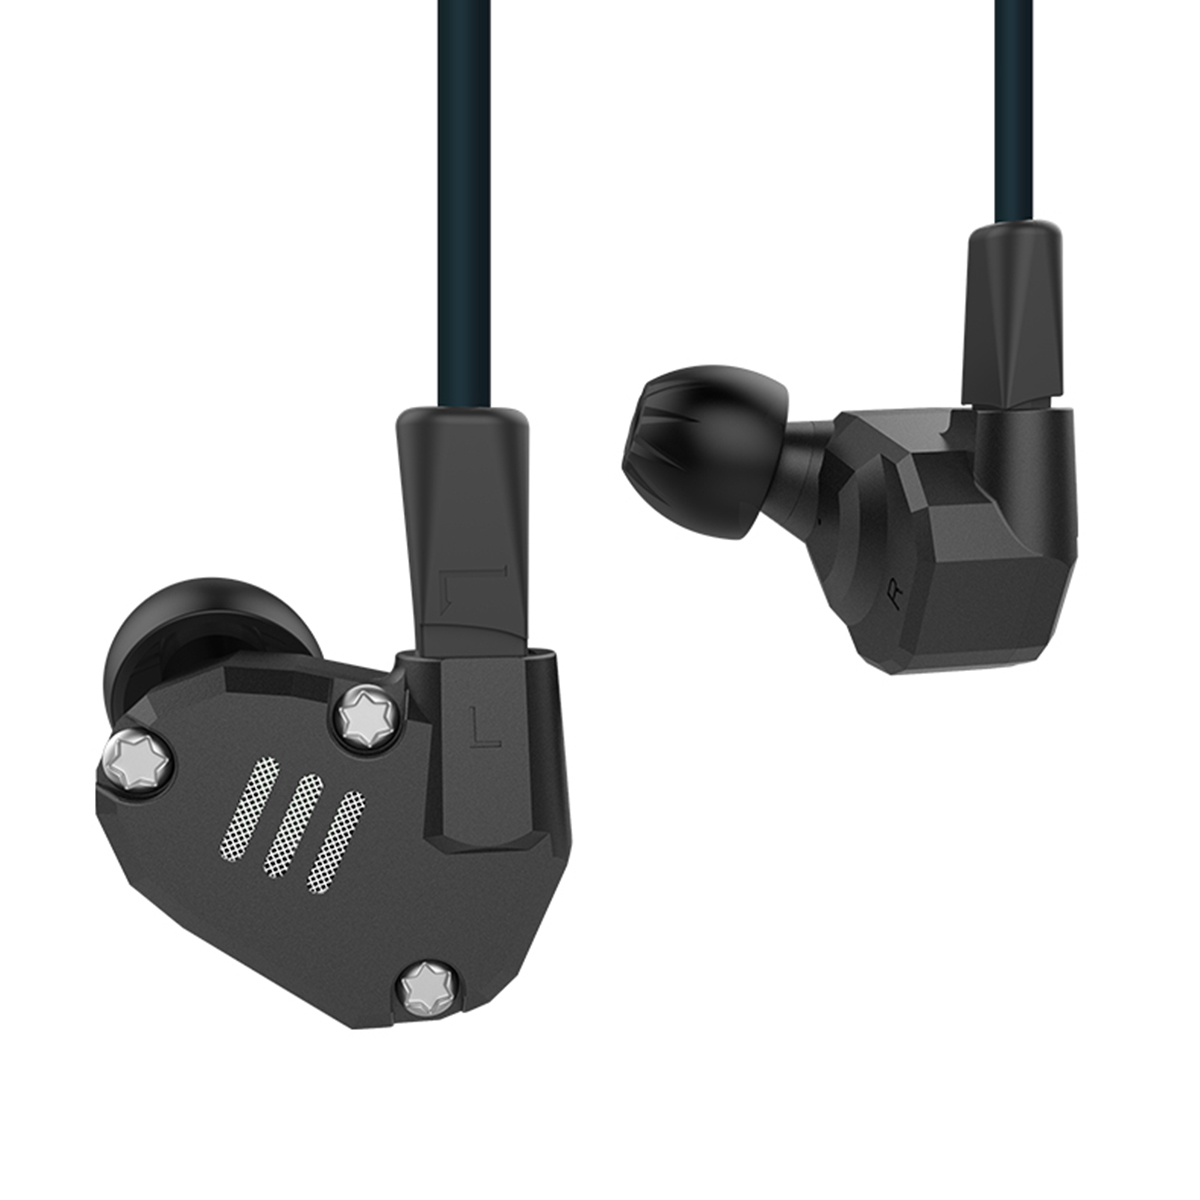 KZ ZS6 Eight Driver Earphone 2DD+2BA Dynamic And Armature In Ear HIFI Stereo Sport Headset Detachable Bluetooth Upgrade Cable tello battery charging hub designed for use with tello flight batteries accommodate up to 3 tello batteries at the same time